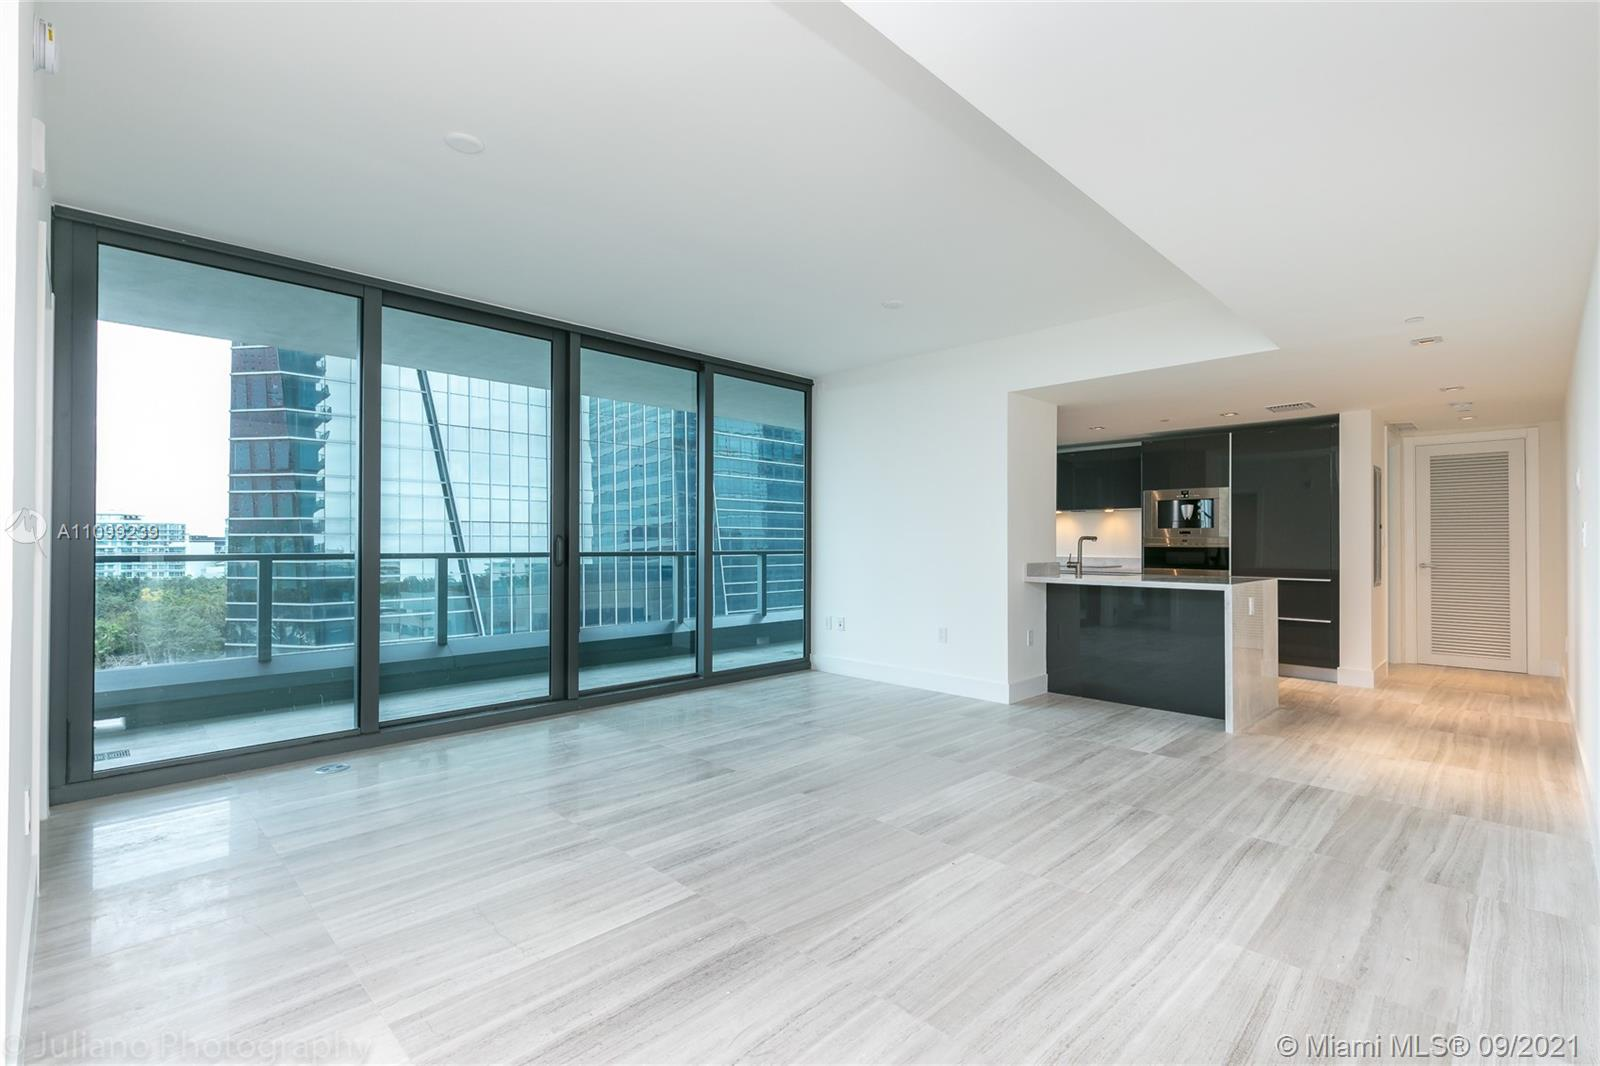 (SOWINGS STARTS THURSDAY SEPTEMBER 23rd) BEST PRICE IN THE BUILDING The most amazing and luxurious building on BRICKELL!!! This high rise offers the most exclusive services for the residents. The condominium offers luxury vehicle with driver, dog walker, elevator garage with car delivery, in house exclusive residents restaurant, in house bar exclusive for residents, gym trainer and much more. This is also an smart building, with means that everything on the unit and on the building can be control thru your cell phone or tablet from anywhere at any time. TOTAL AREA 1,355 SqFt as per developer